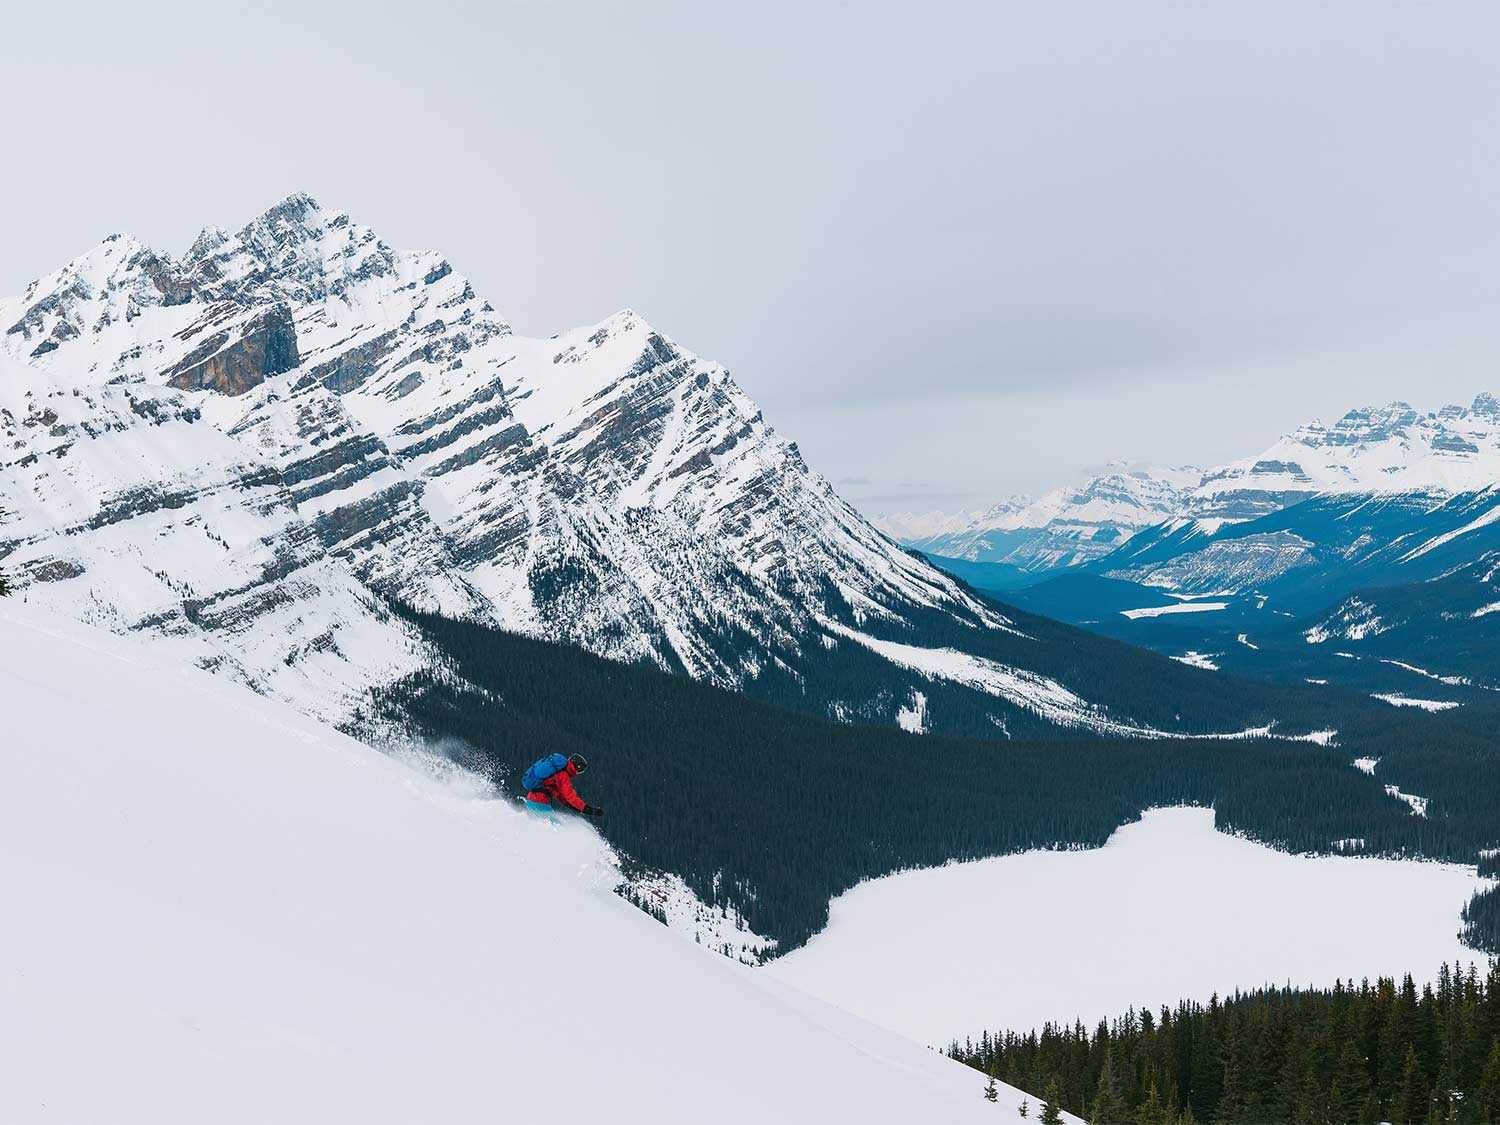 A person in the best backcountry skis, skis down a snowy mountain.